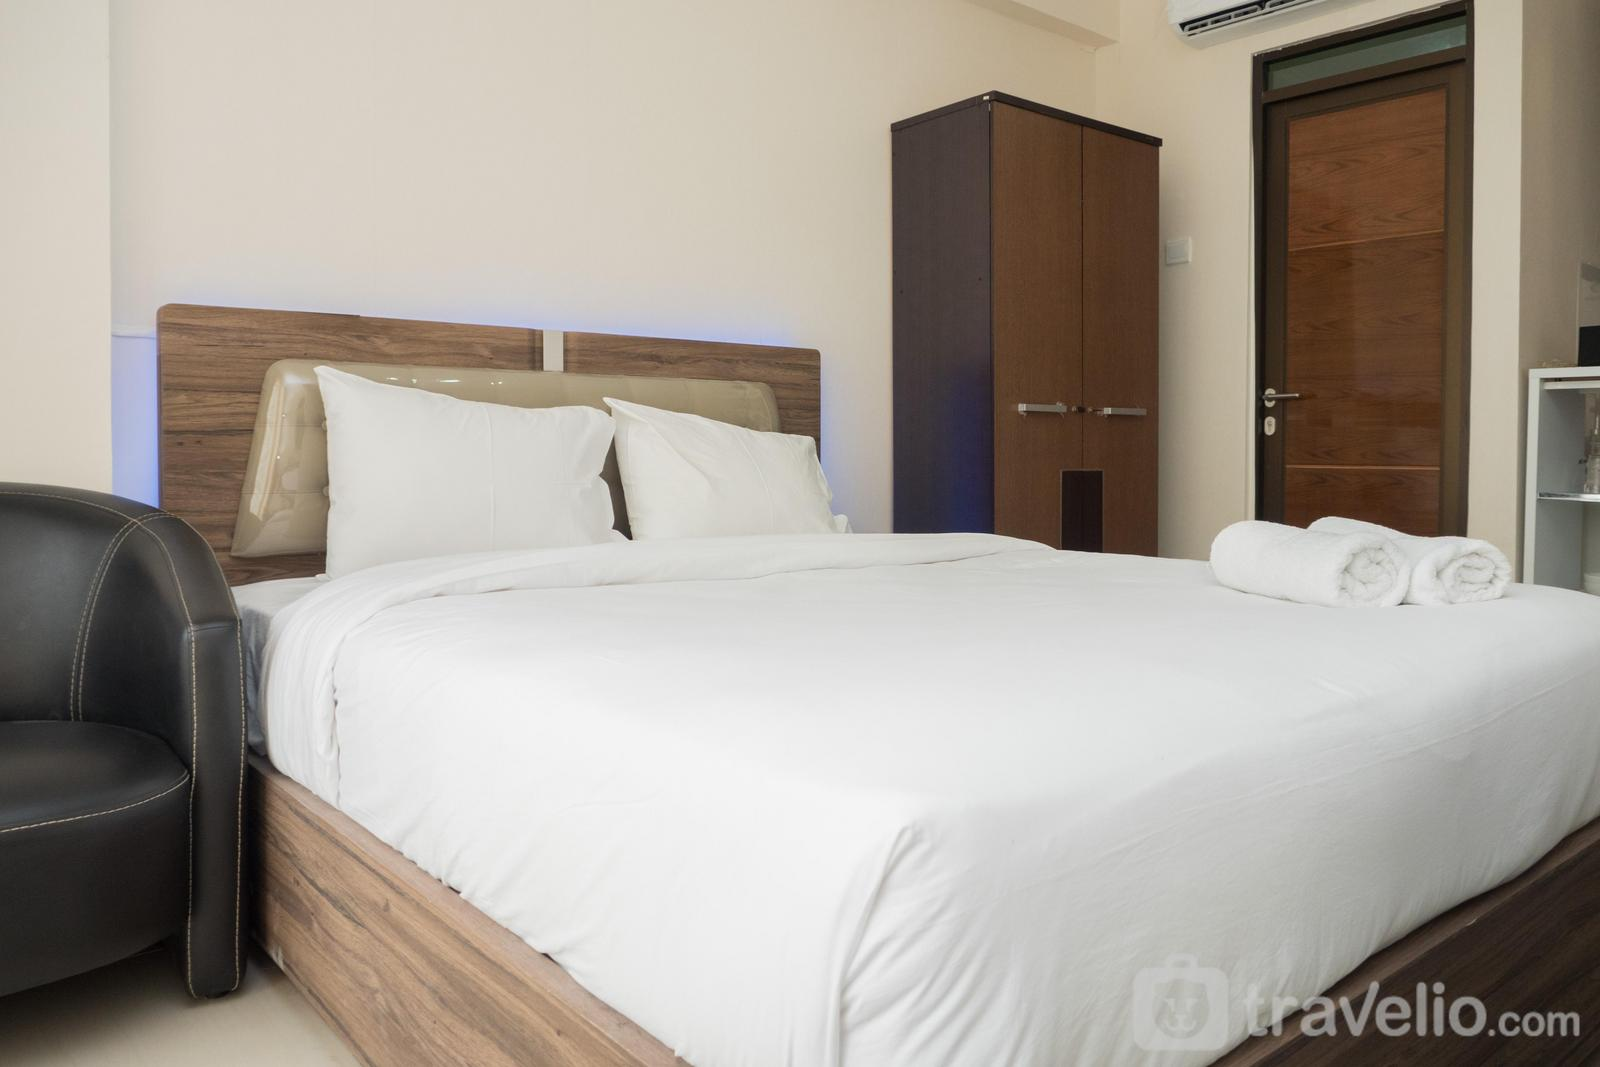 Gateway Pasteur Apartment - Studio Gateway Pasteur Apartment near Pasteur Exit Toll By Travelio